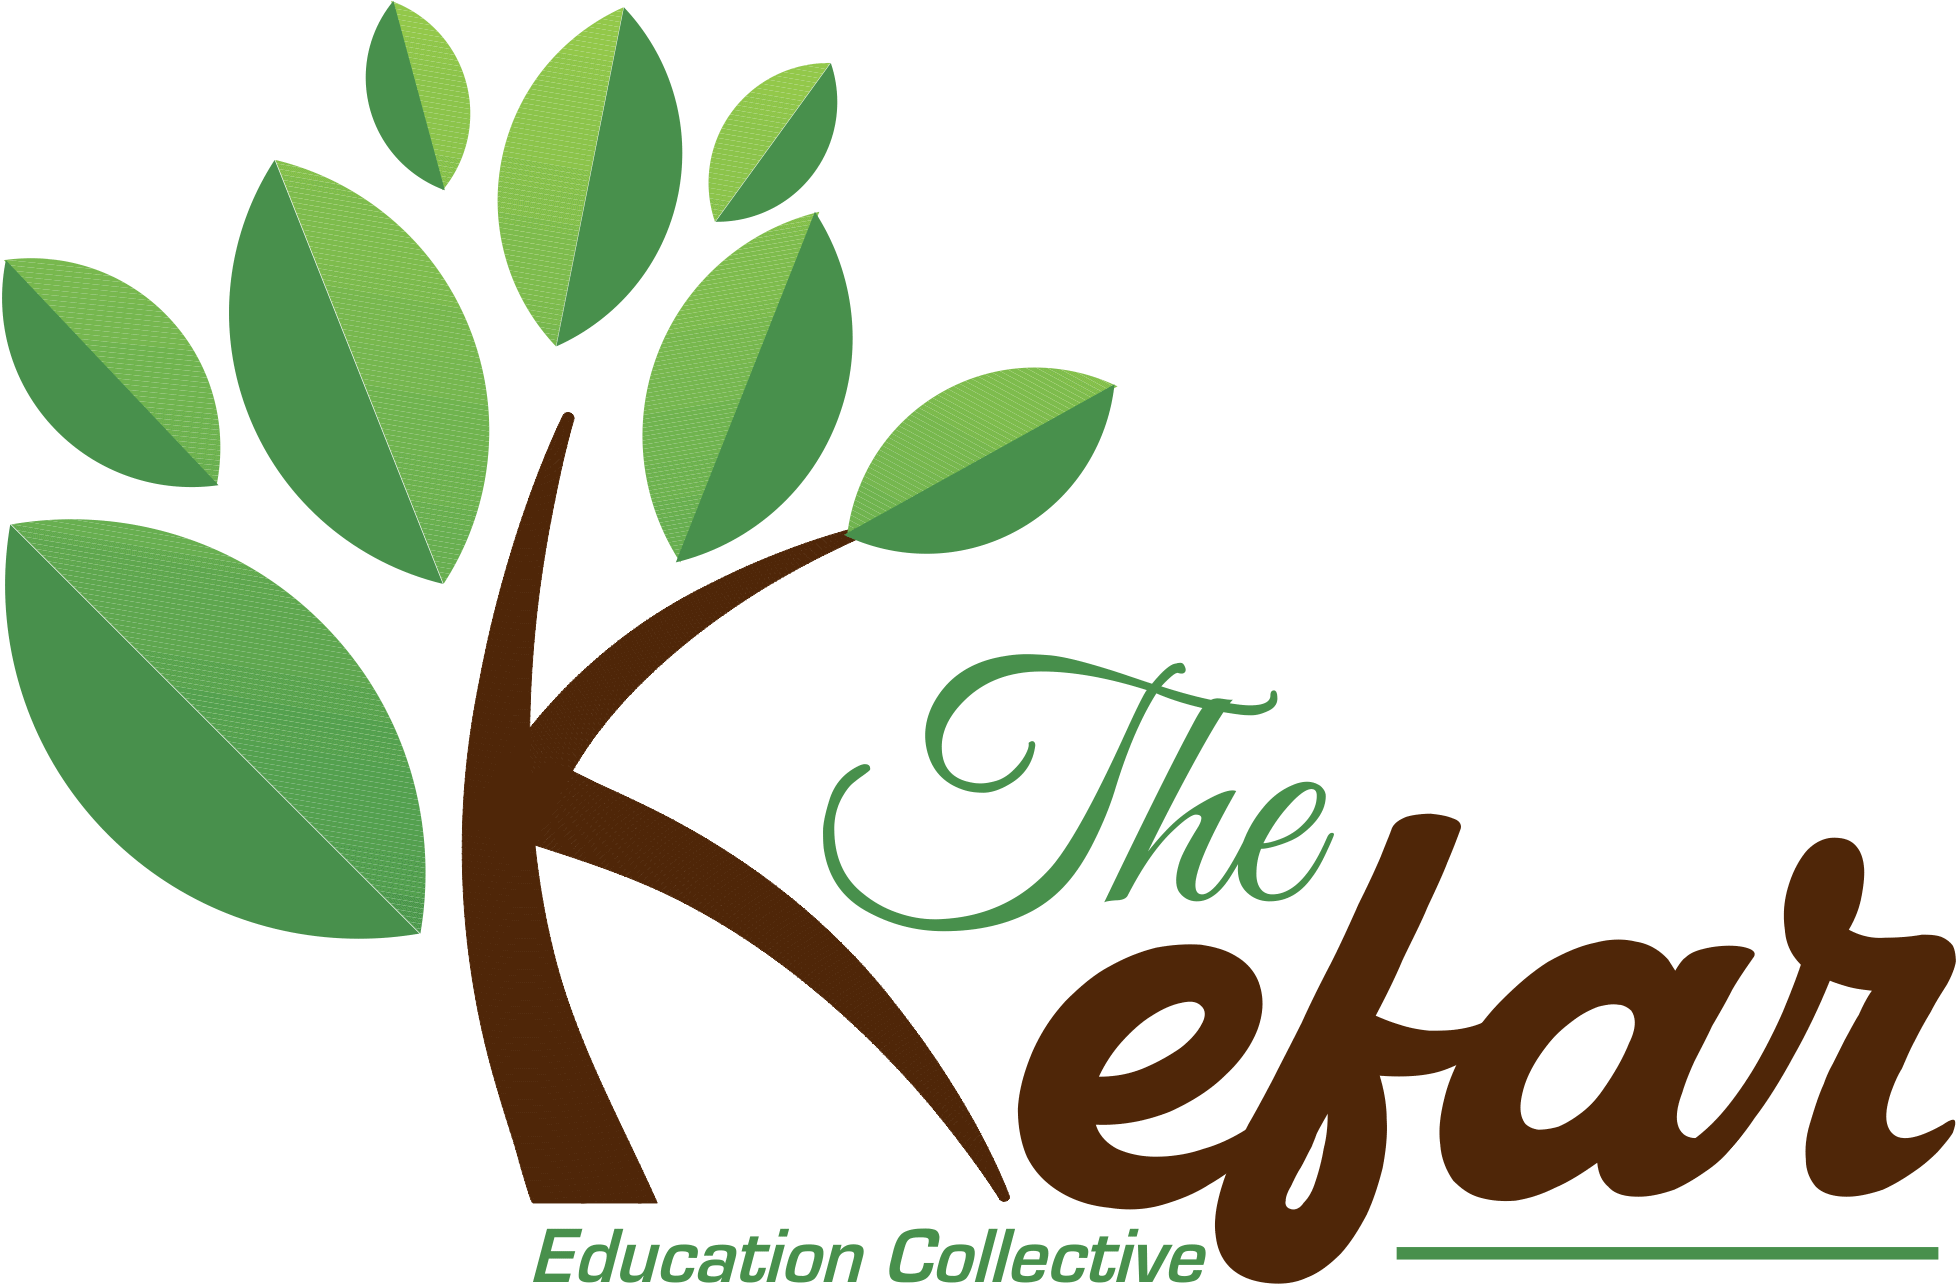 The Kefar